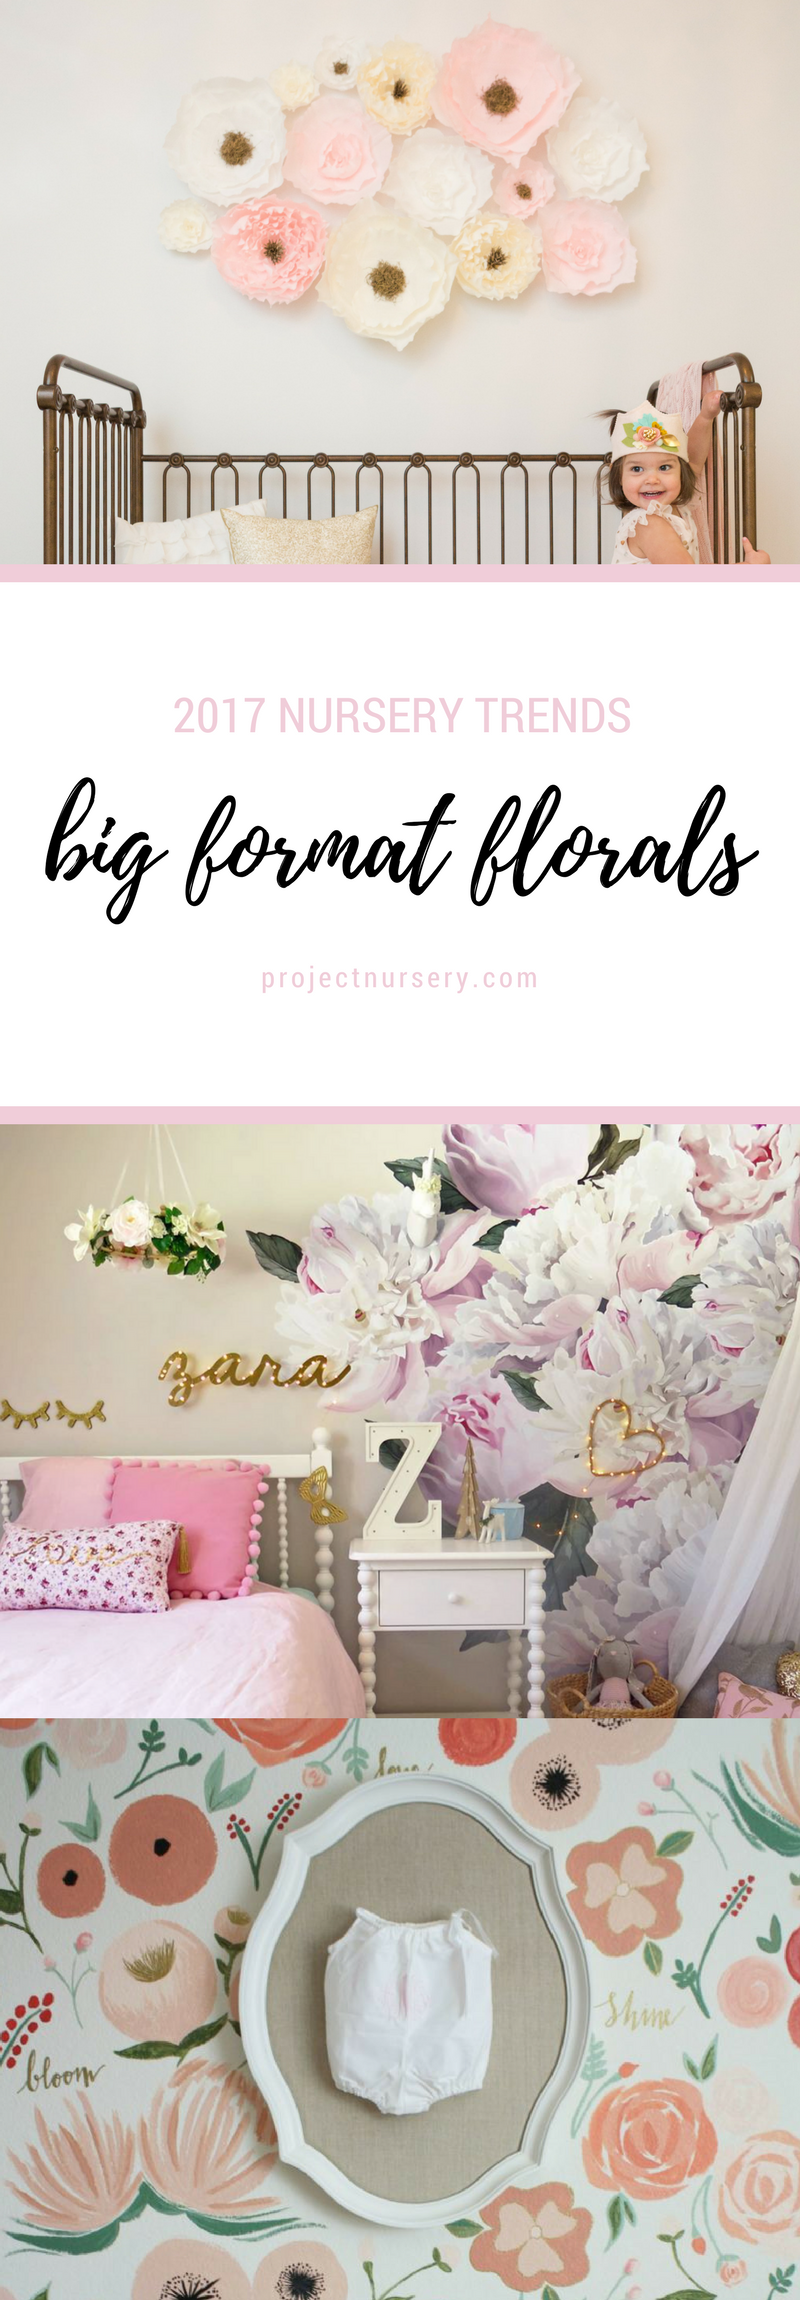 12 Nursery Trends For 2017 Tyxgb76aj This Floral Wall